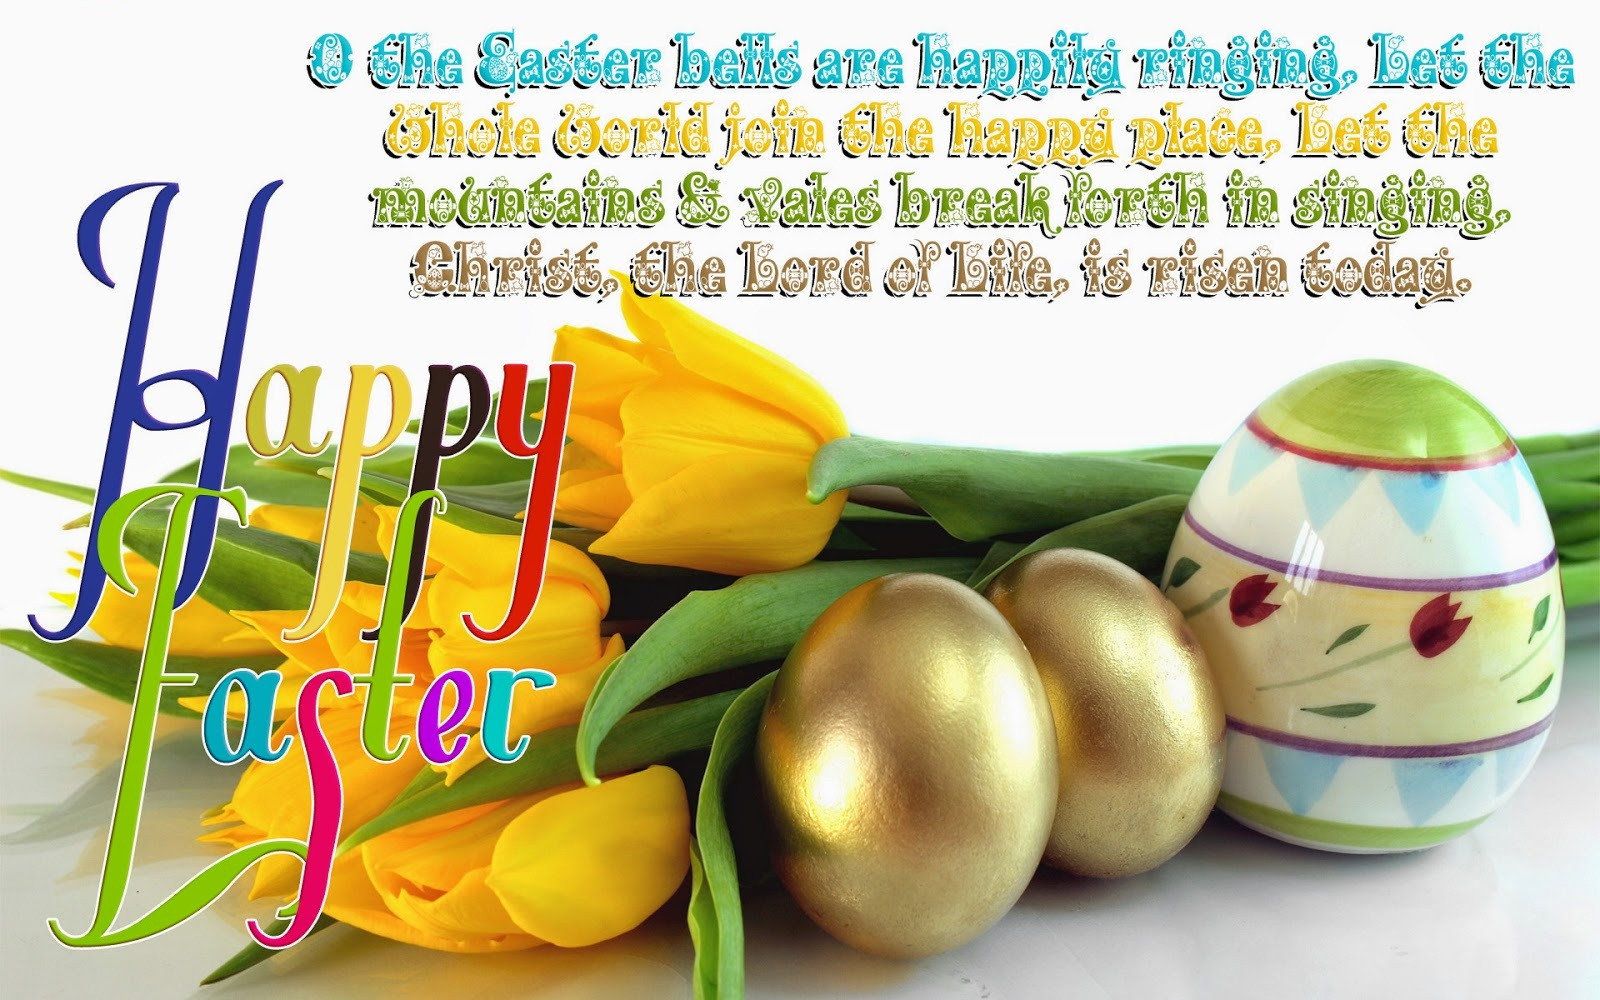 Happy-Easter-Day-Greetings-Images-Wallpapers-4